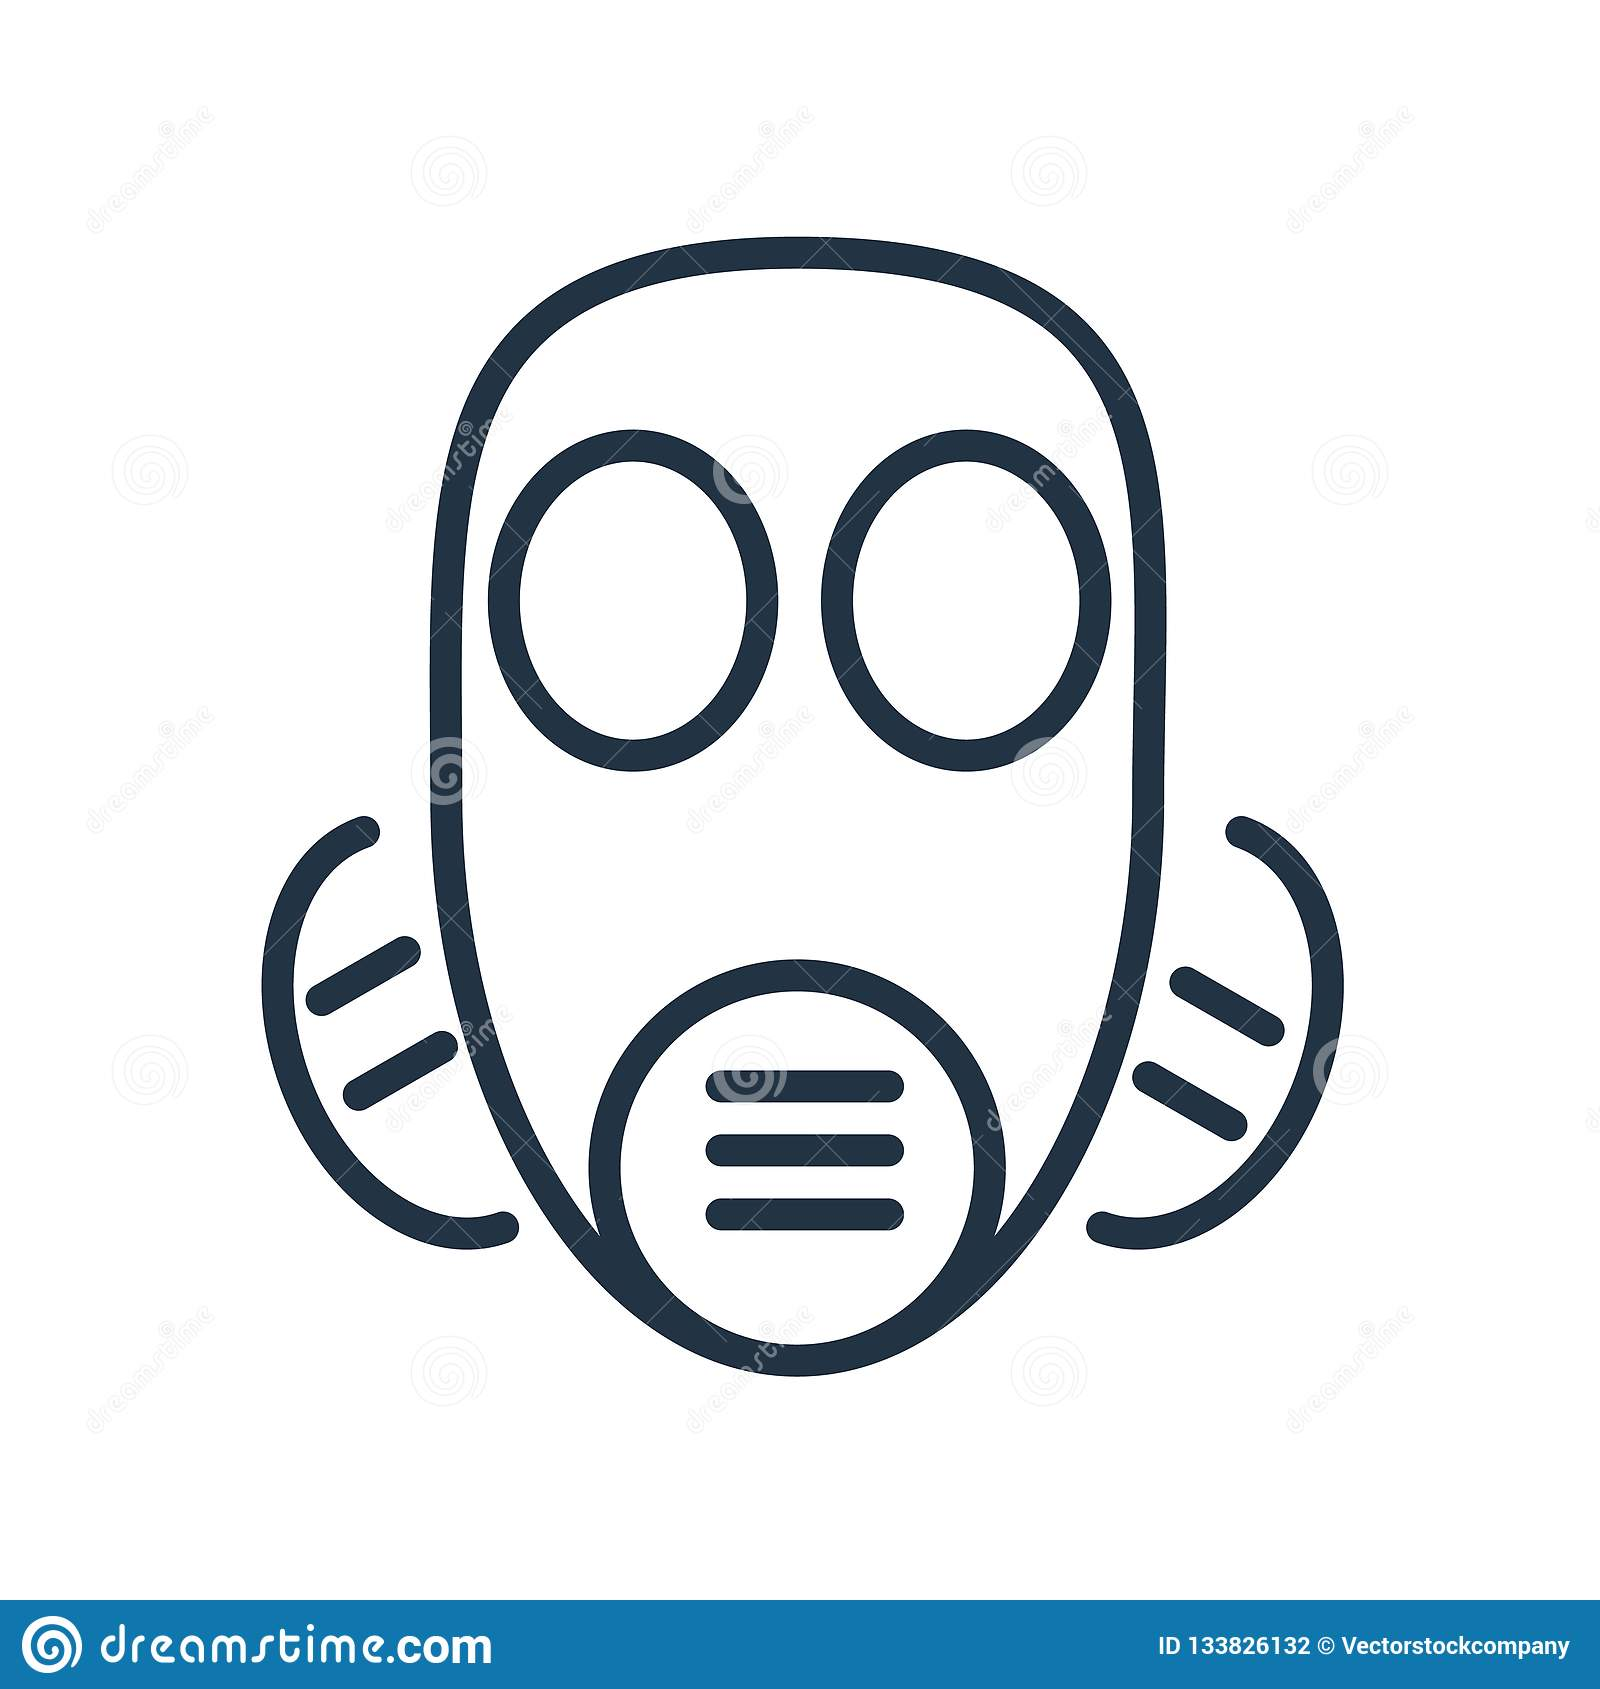 Mask icon vector isolated on white background, Mask sign